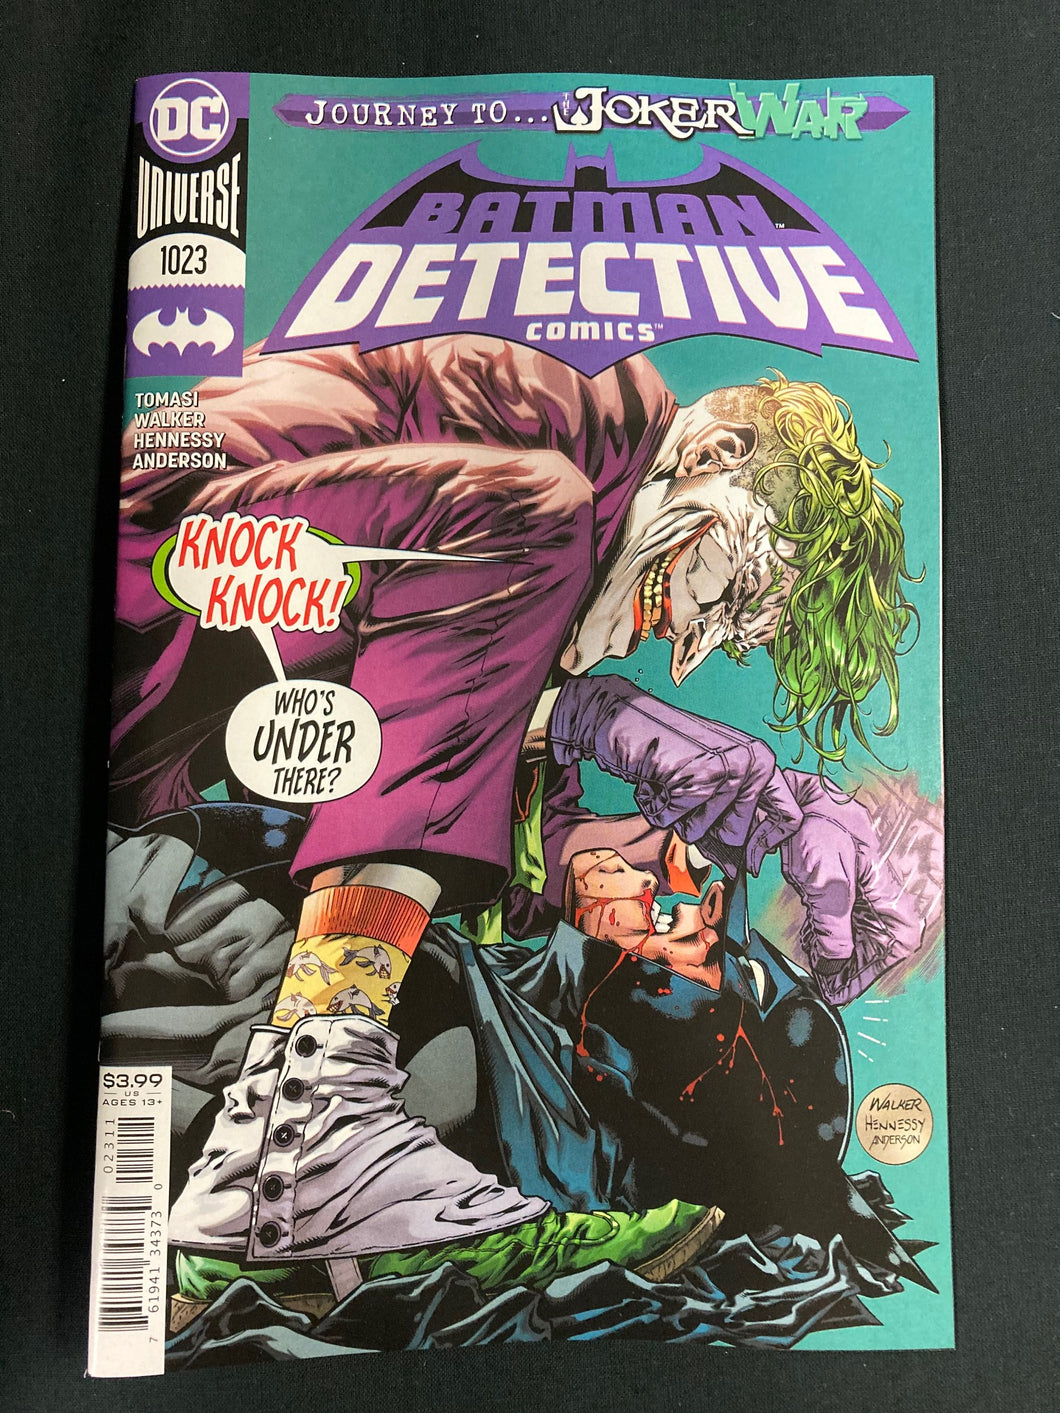 DETECTIVE COMICS #1023 (JOKER WAR)